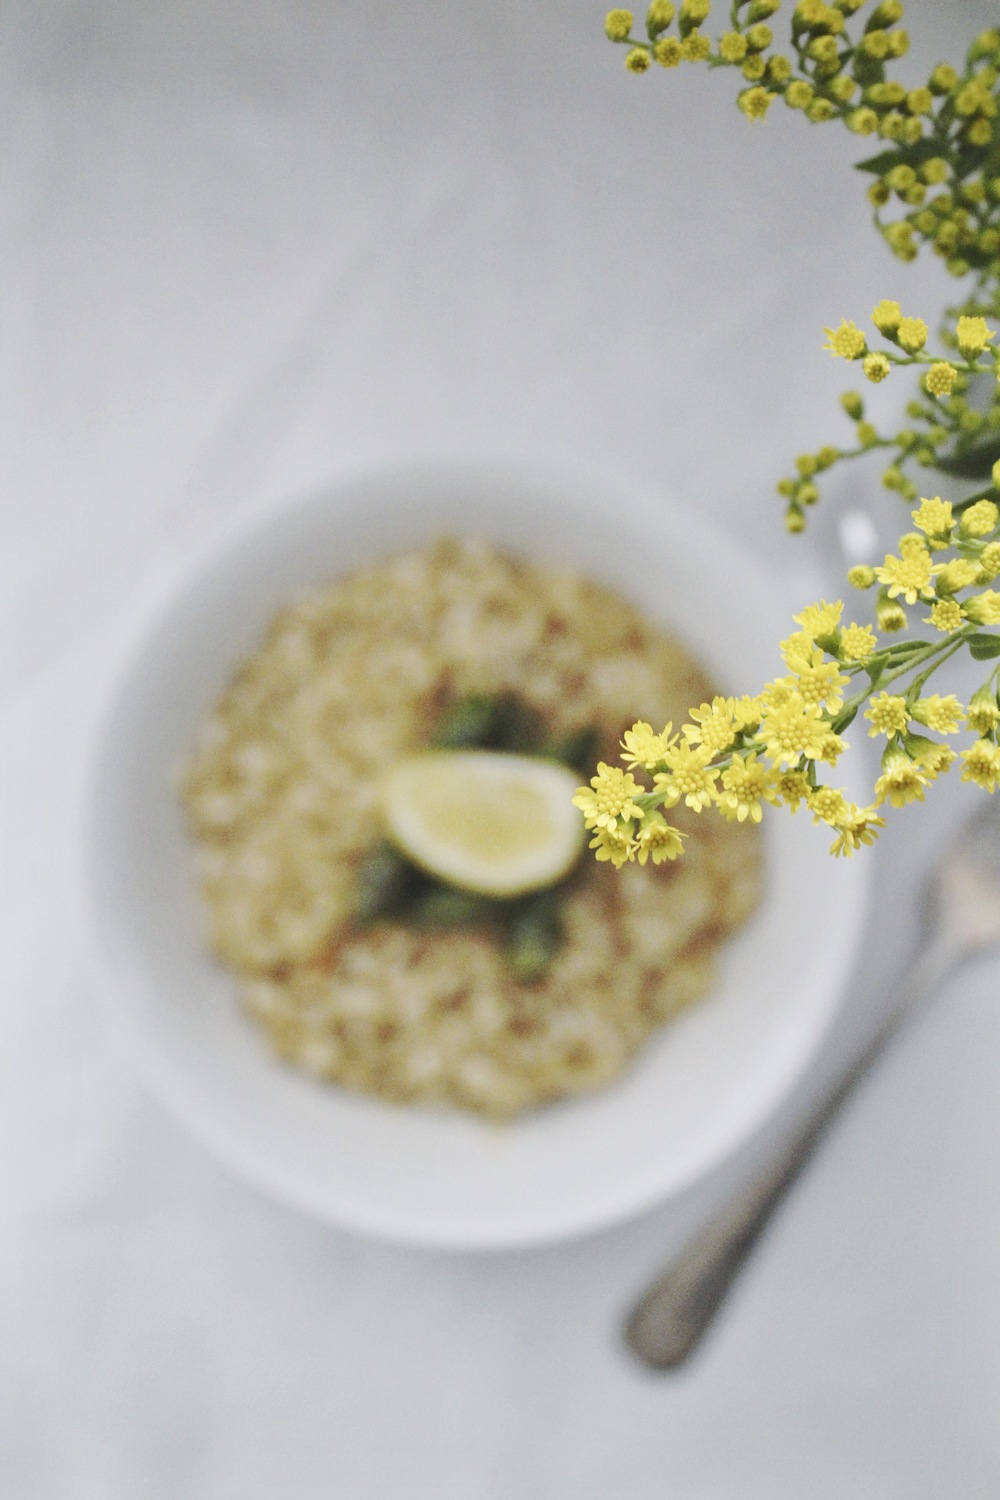 risotto with lemon and saffron and asparagus